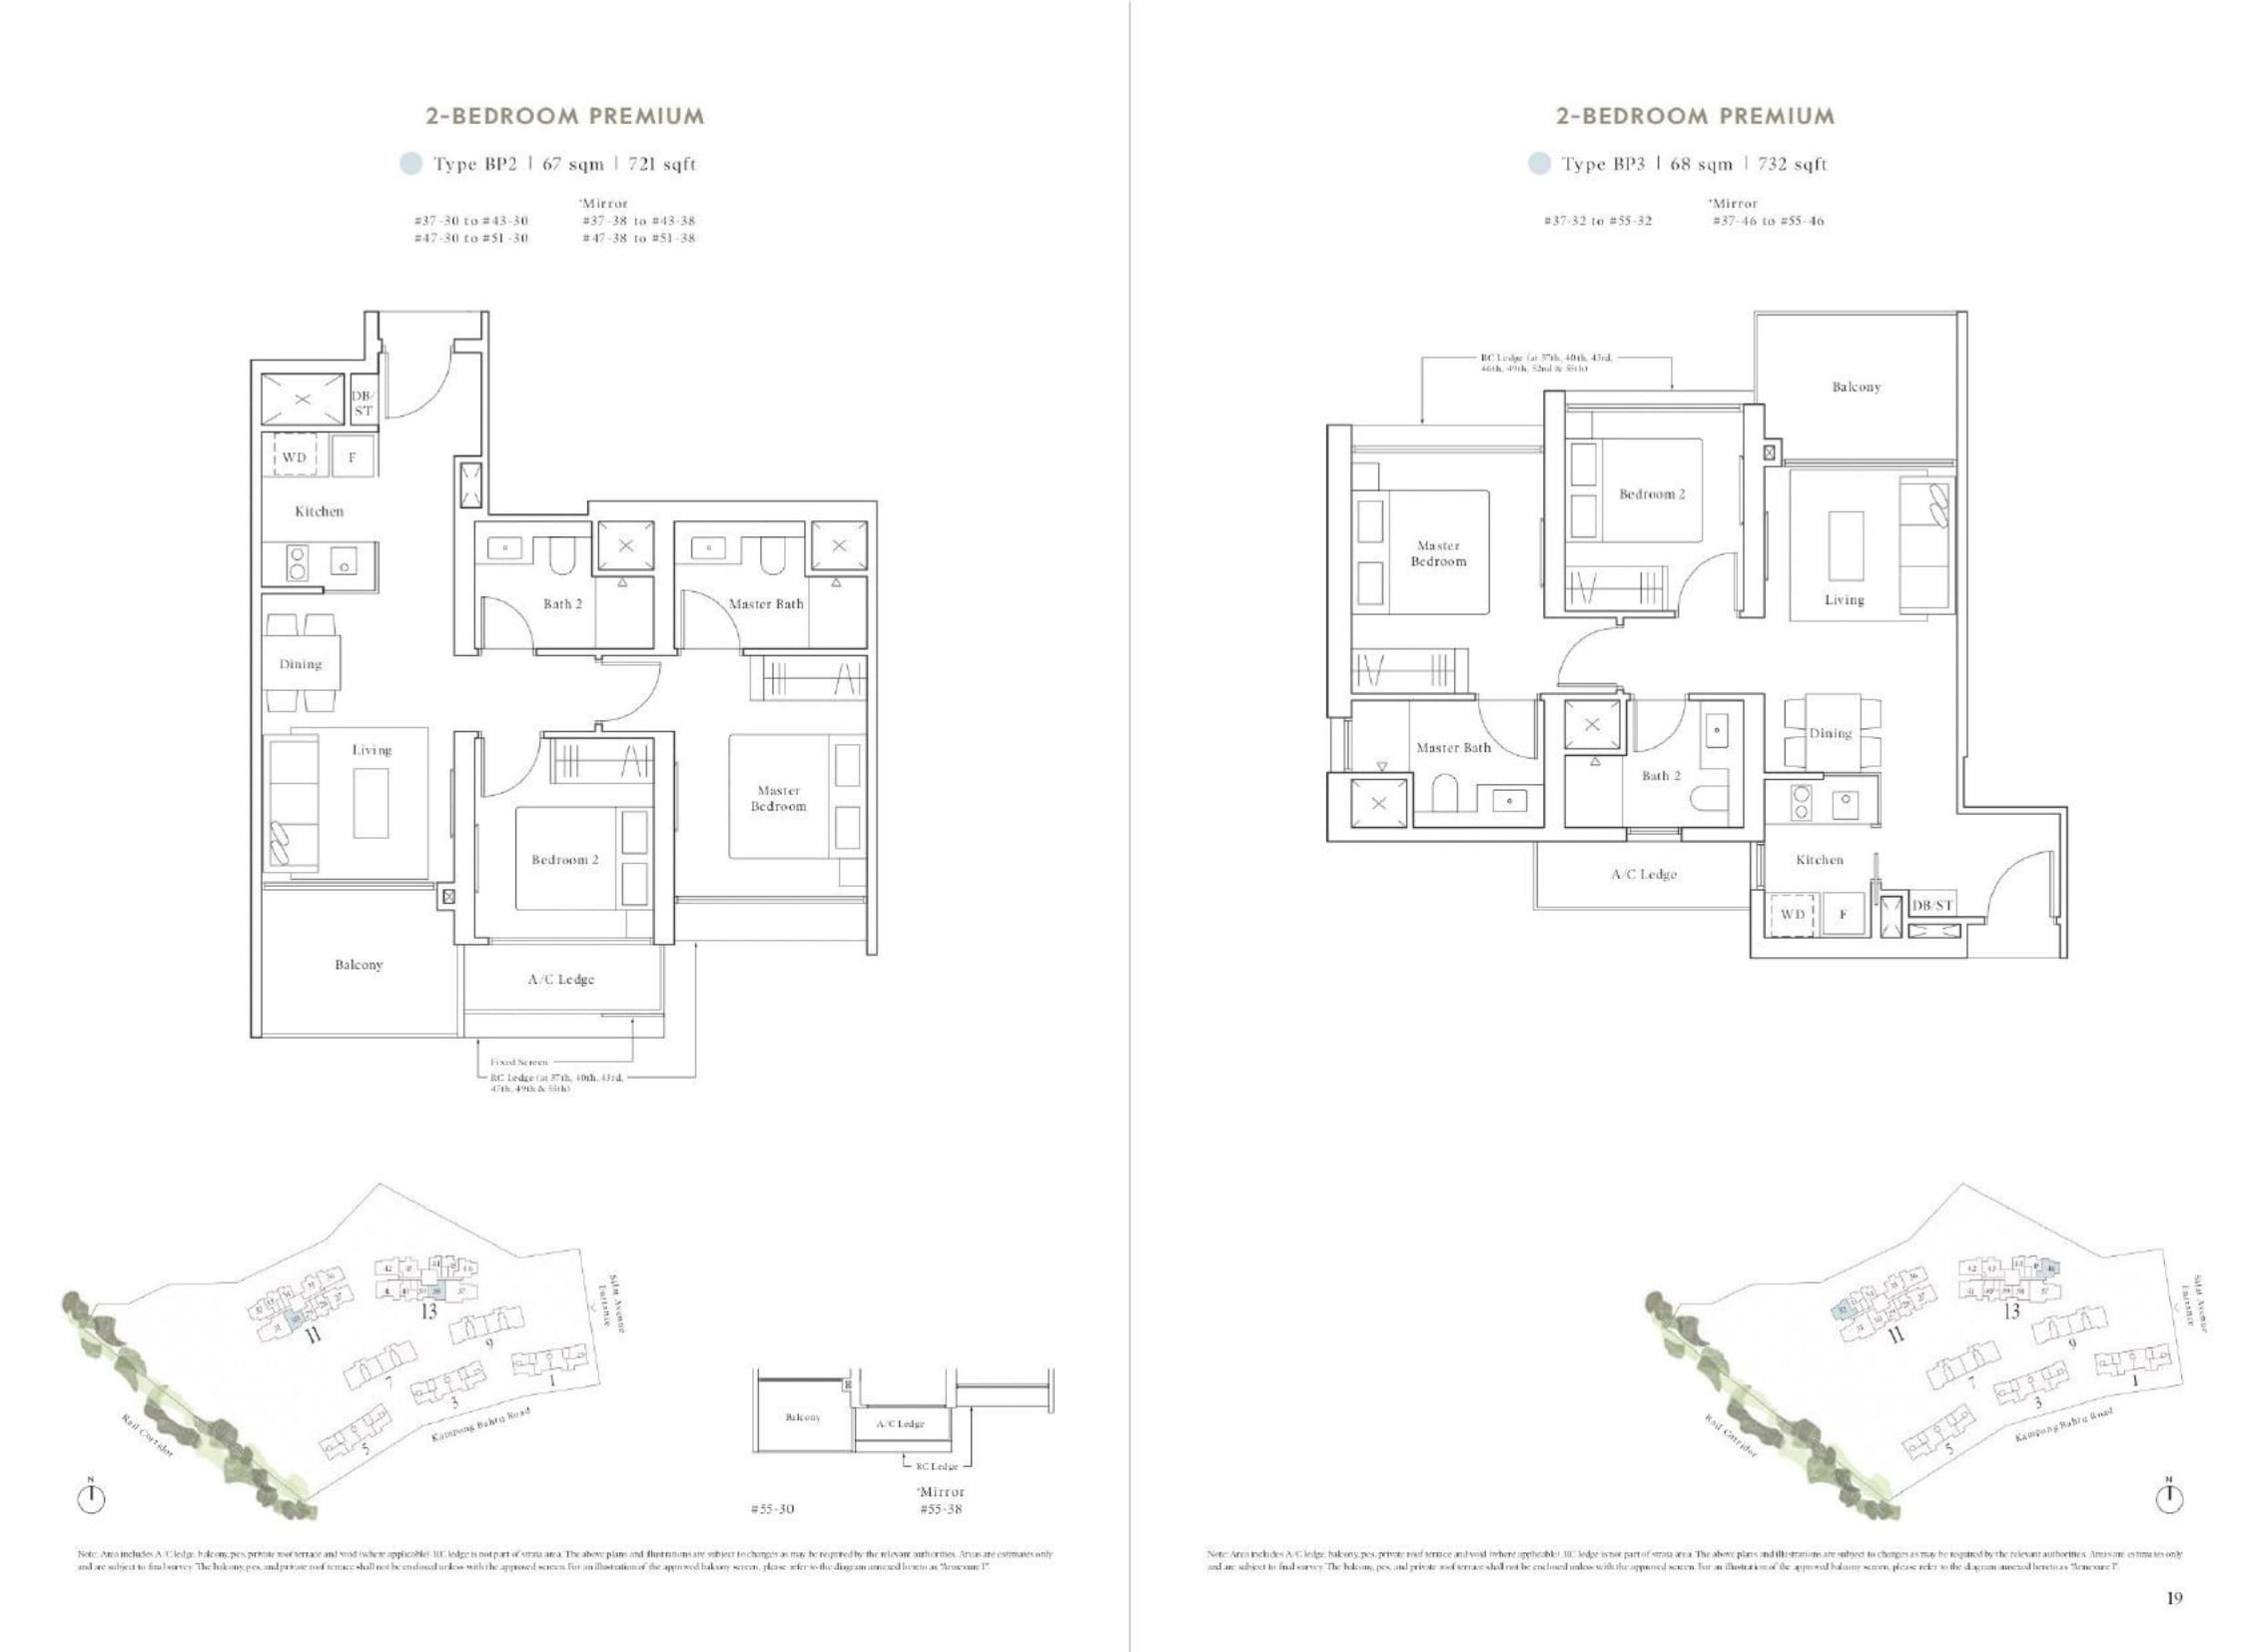 Avenue South Residence's Peak Collection tw0-bedroom & two-bedroom premium types